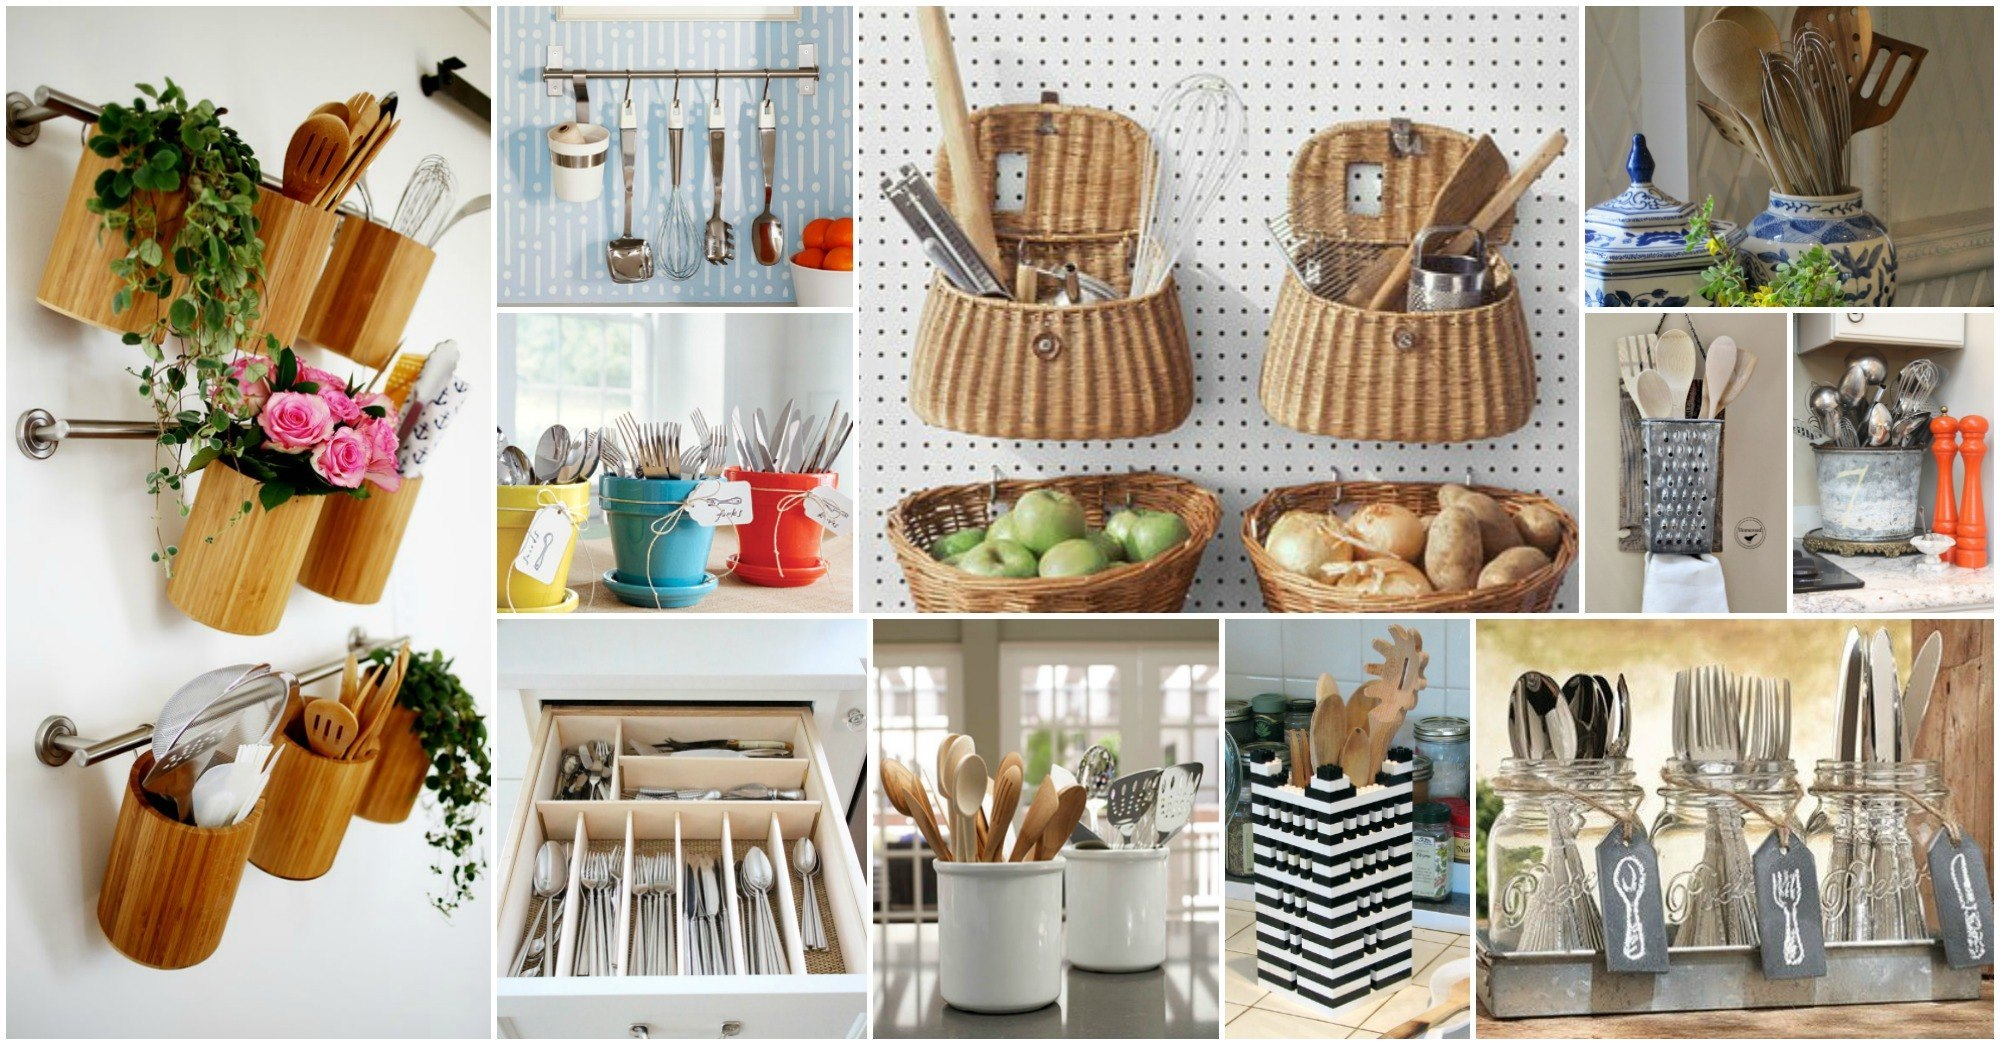 20 Creative Ideas Of How to Organize Your Kitchen Utensils ...